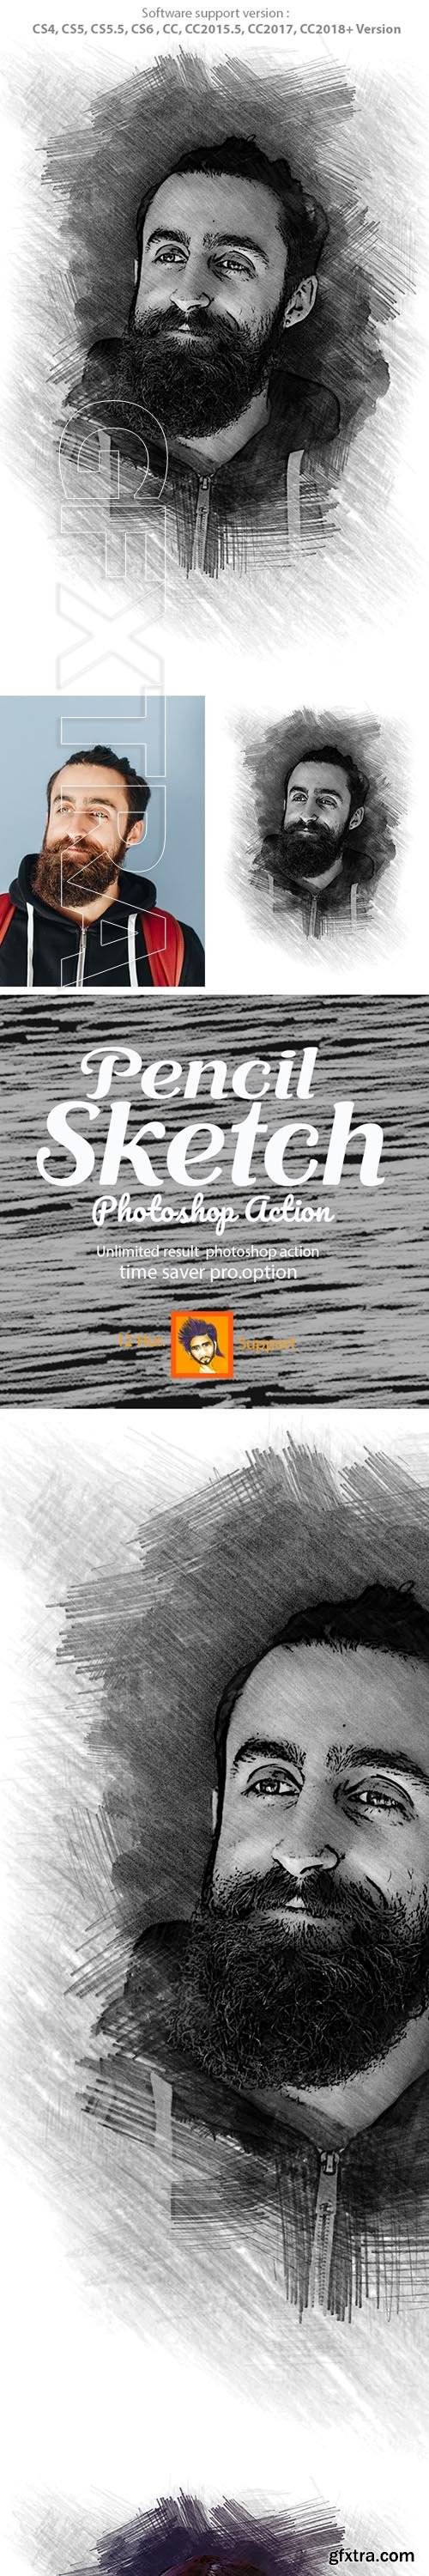 GraphicRiver - Pencil Sketch Photoshop Action 22896928